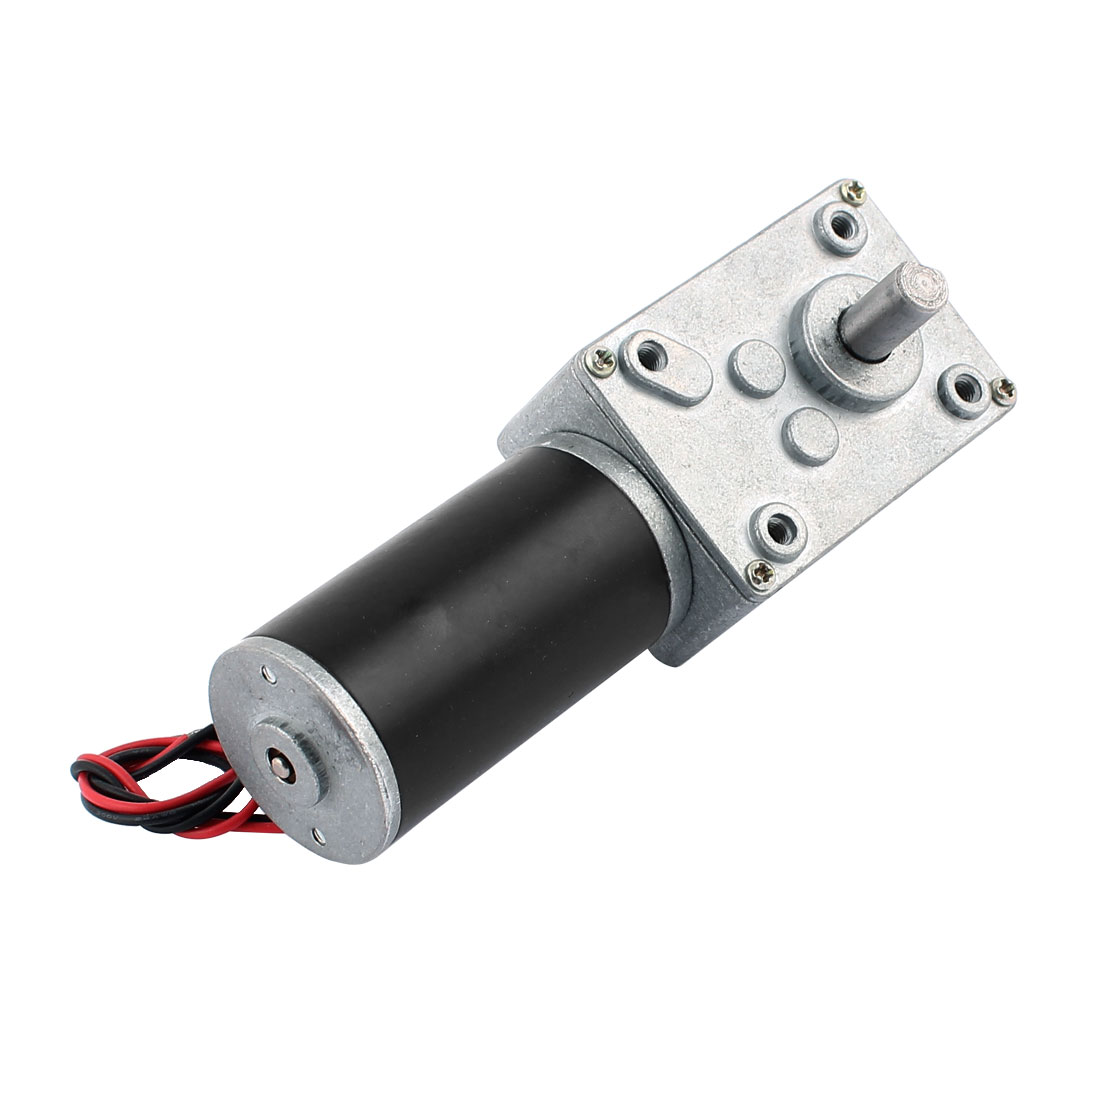 DC 24V 15RPM 8mmx15mm Dual D-Shape Shaft Electric Power Turbo Worm Geared Motor